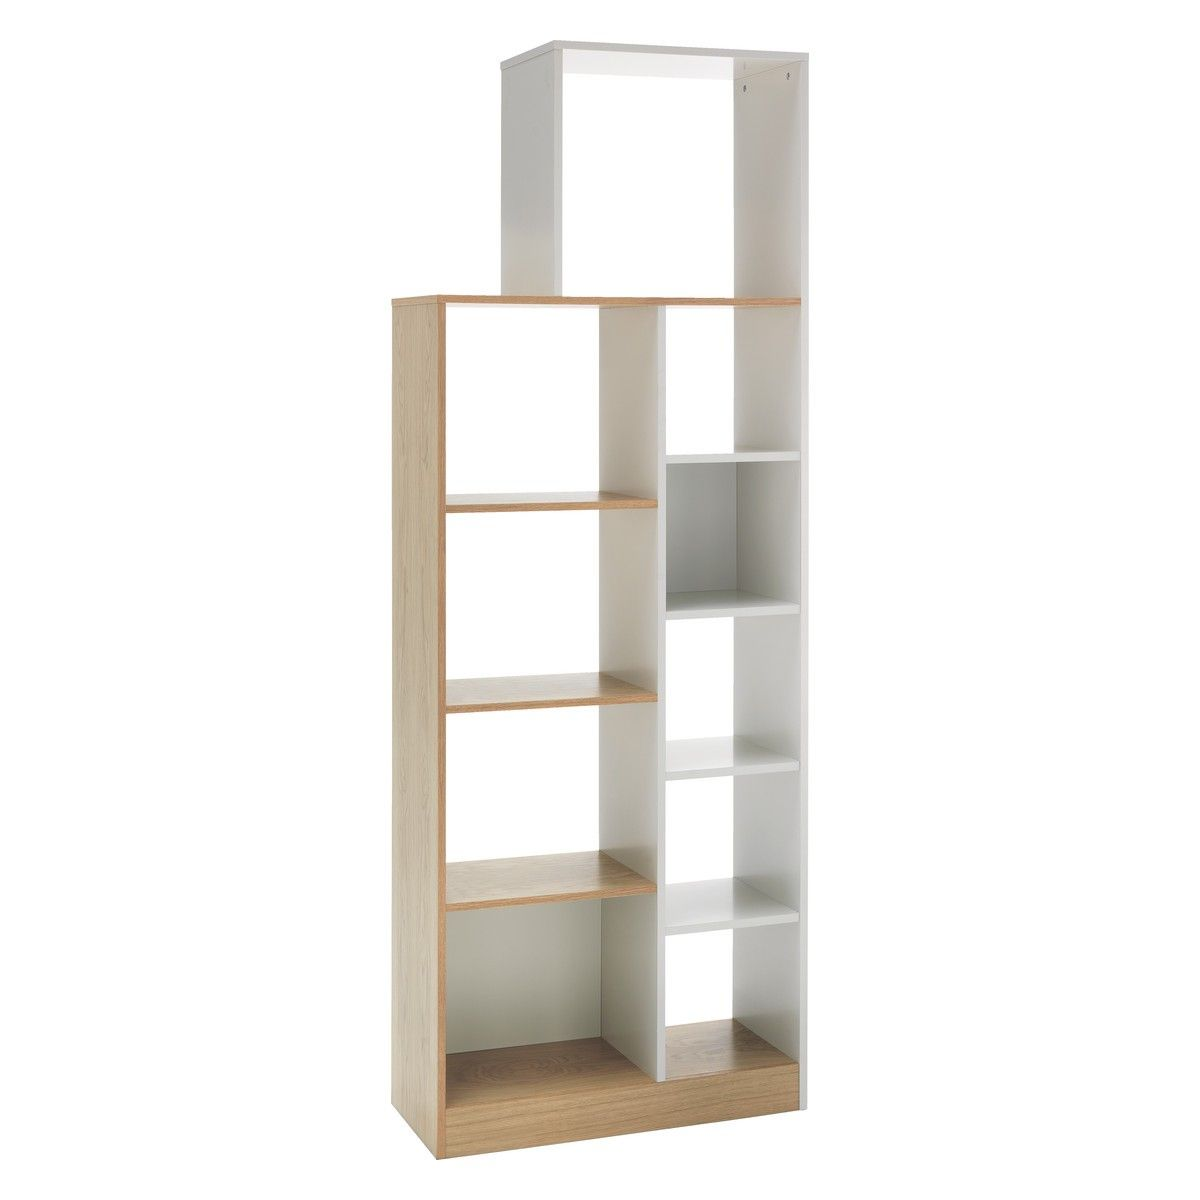 buy online a70f6 bc842 MILES Oak and linen white tall shelving unit | Buy now at ...